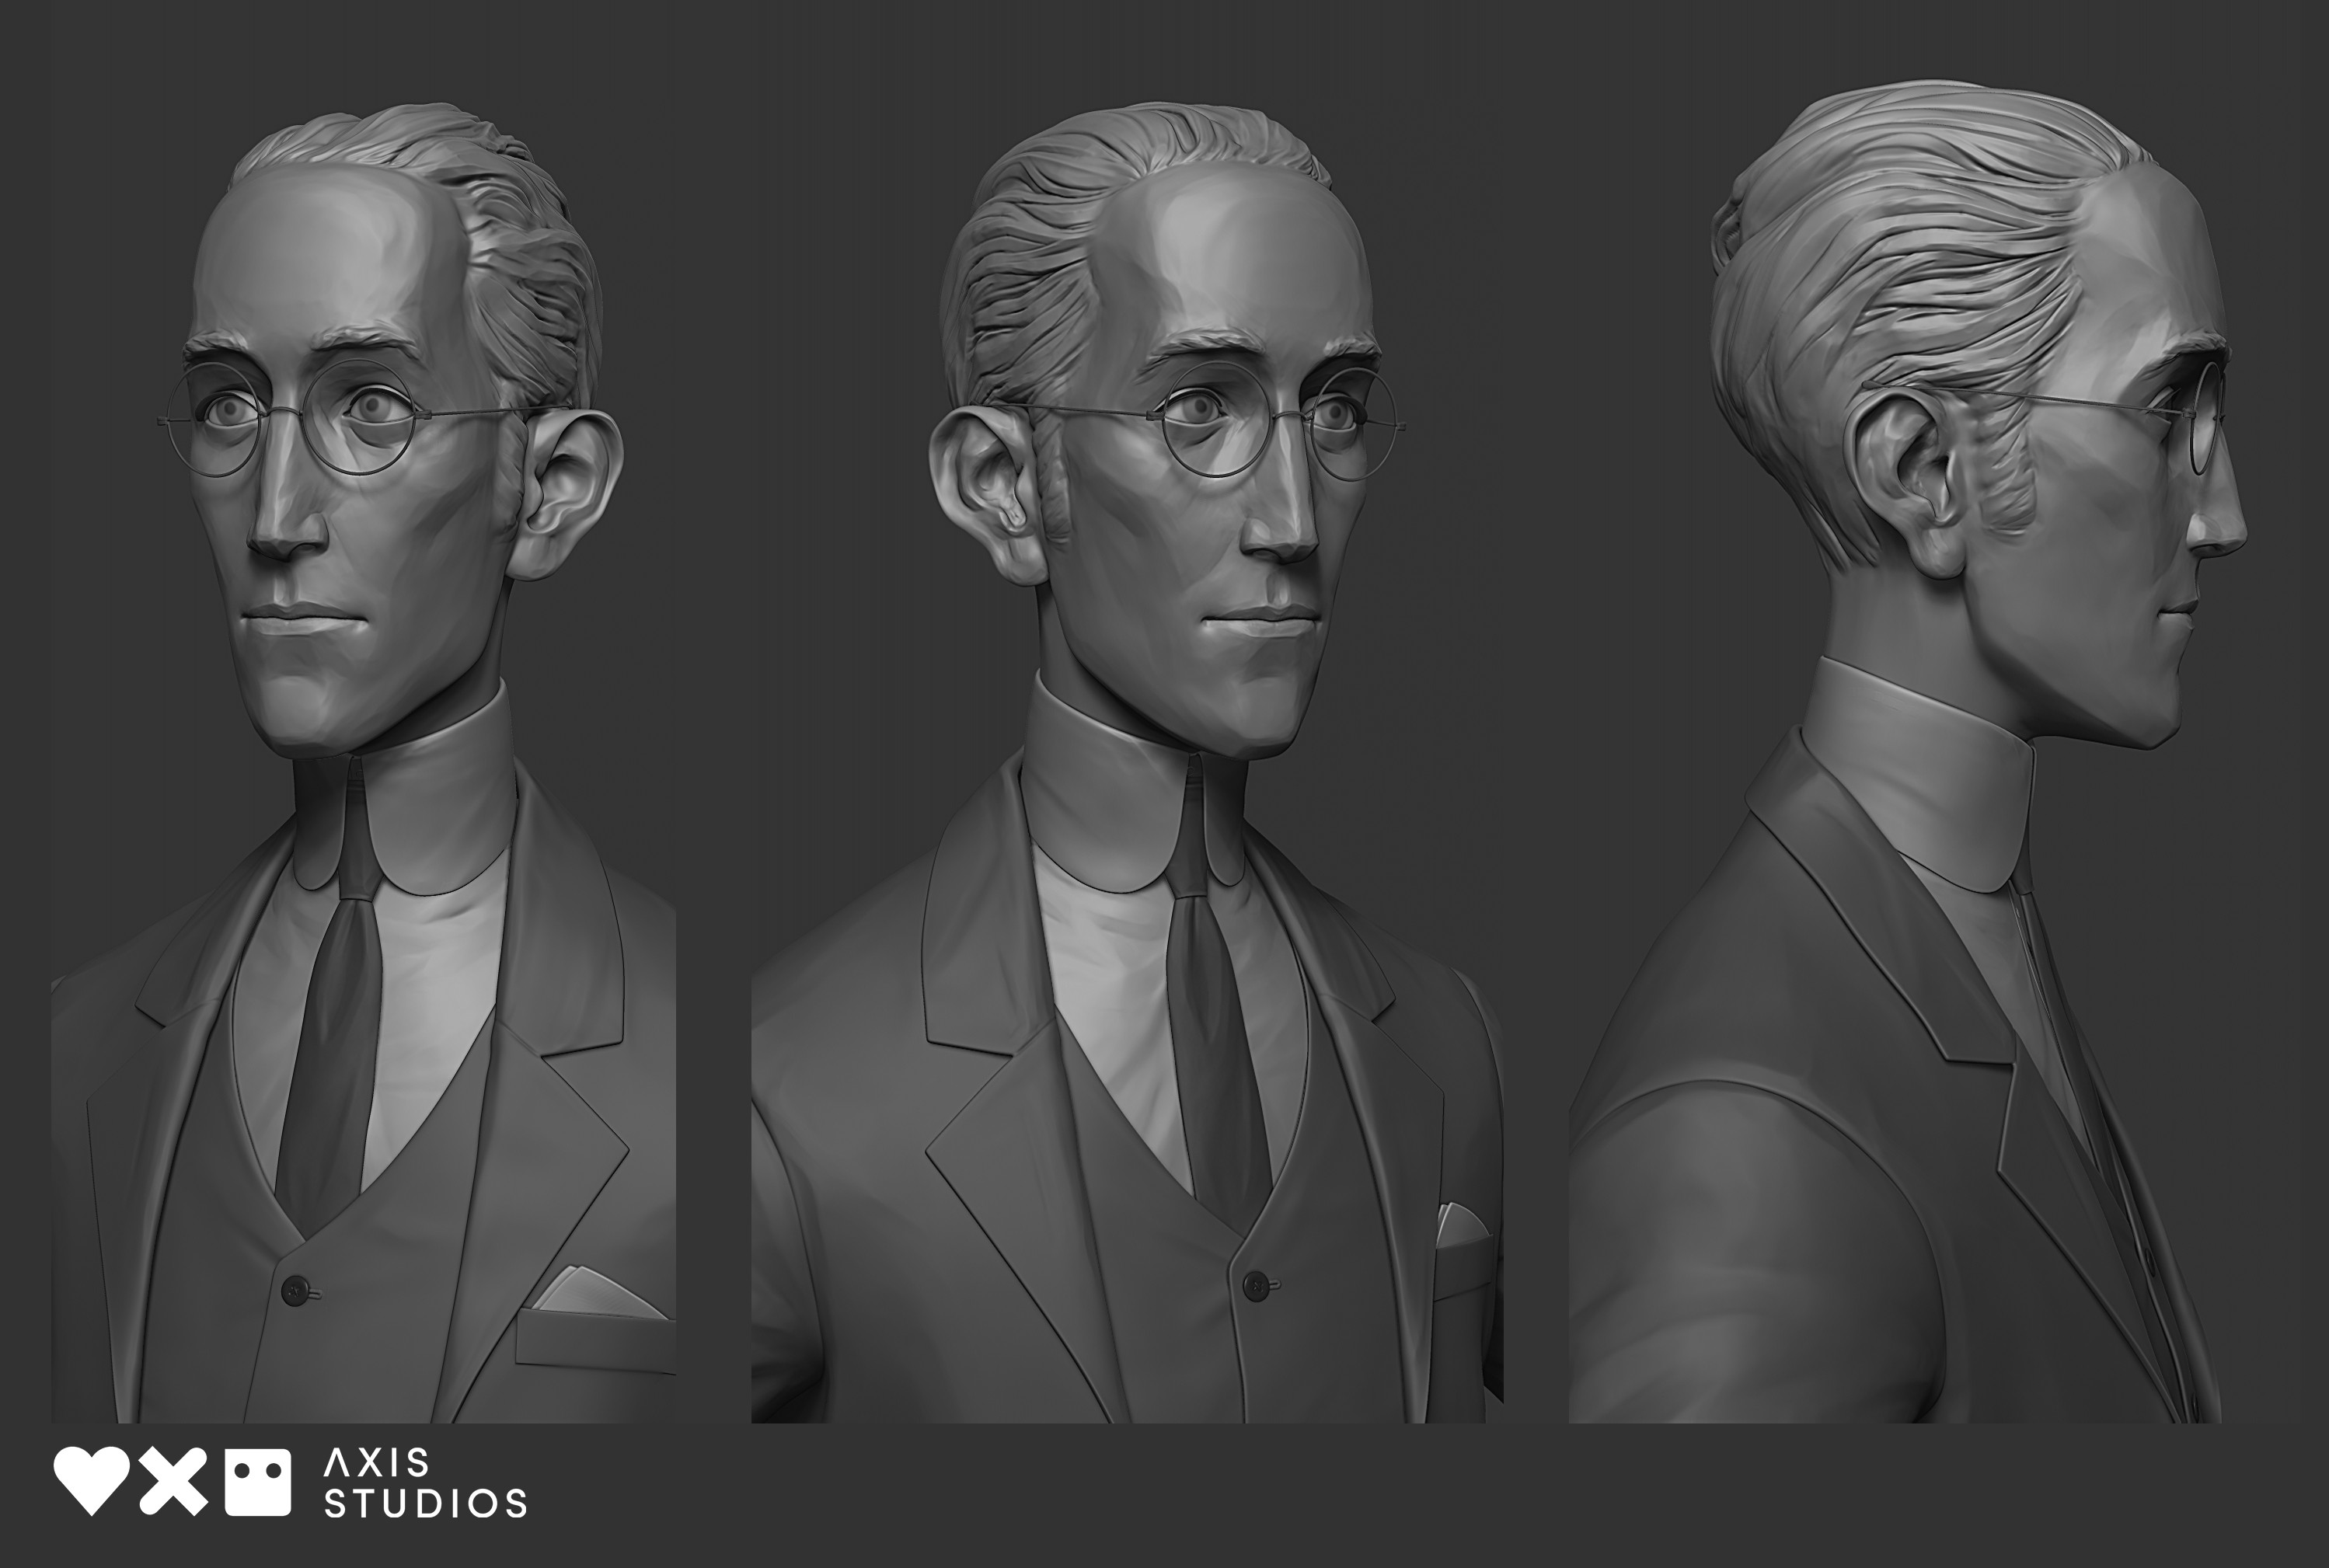 Final Zbrush model. The head was a collaboration with the incredible James W Cain who created a series of amazing concept sculpts for the character. The suit and body is solely my work.